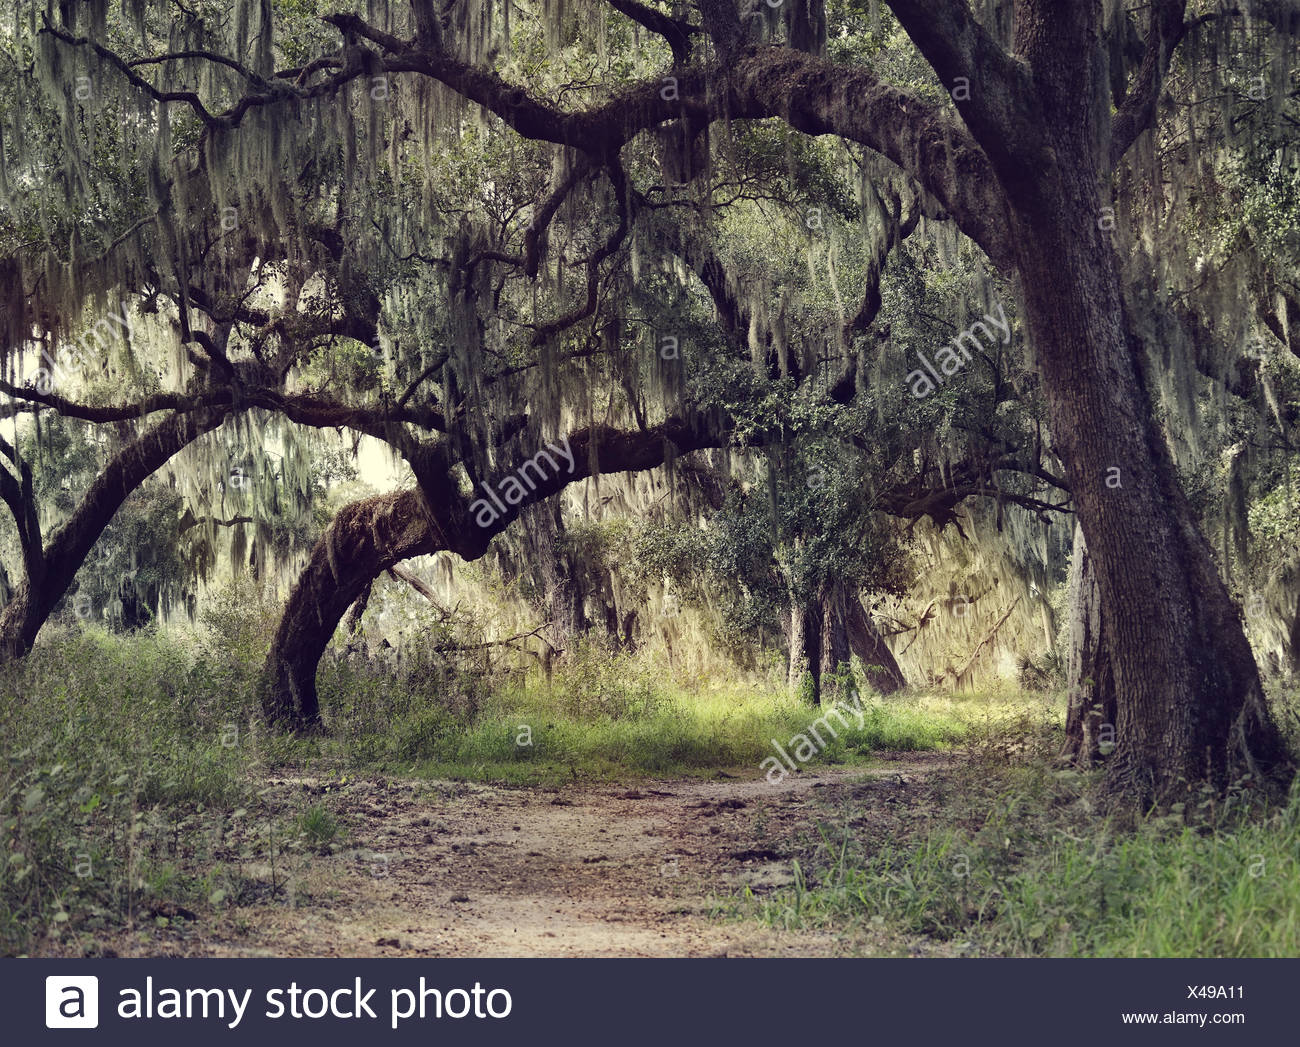 Oak Trees Spanish Moss High Resolution Stock Photography And Images Alamy